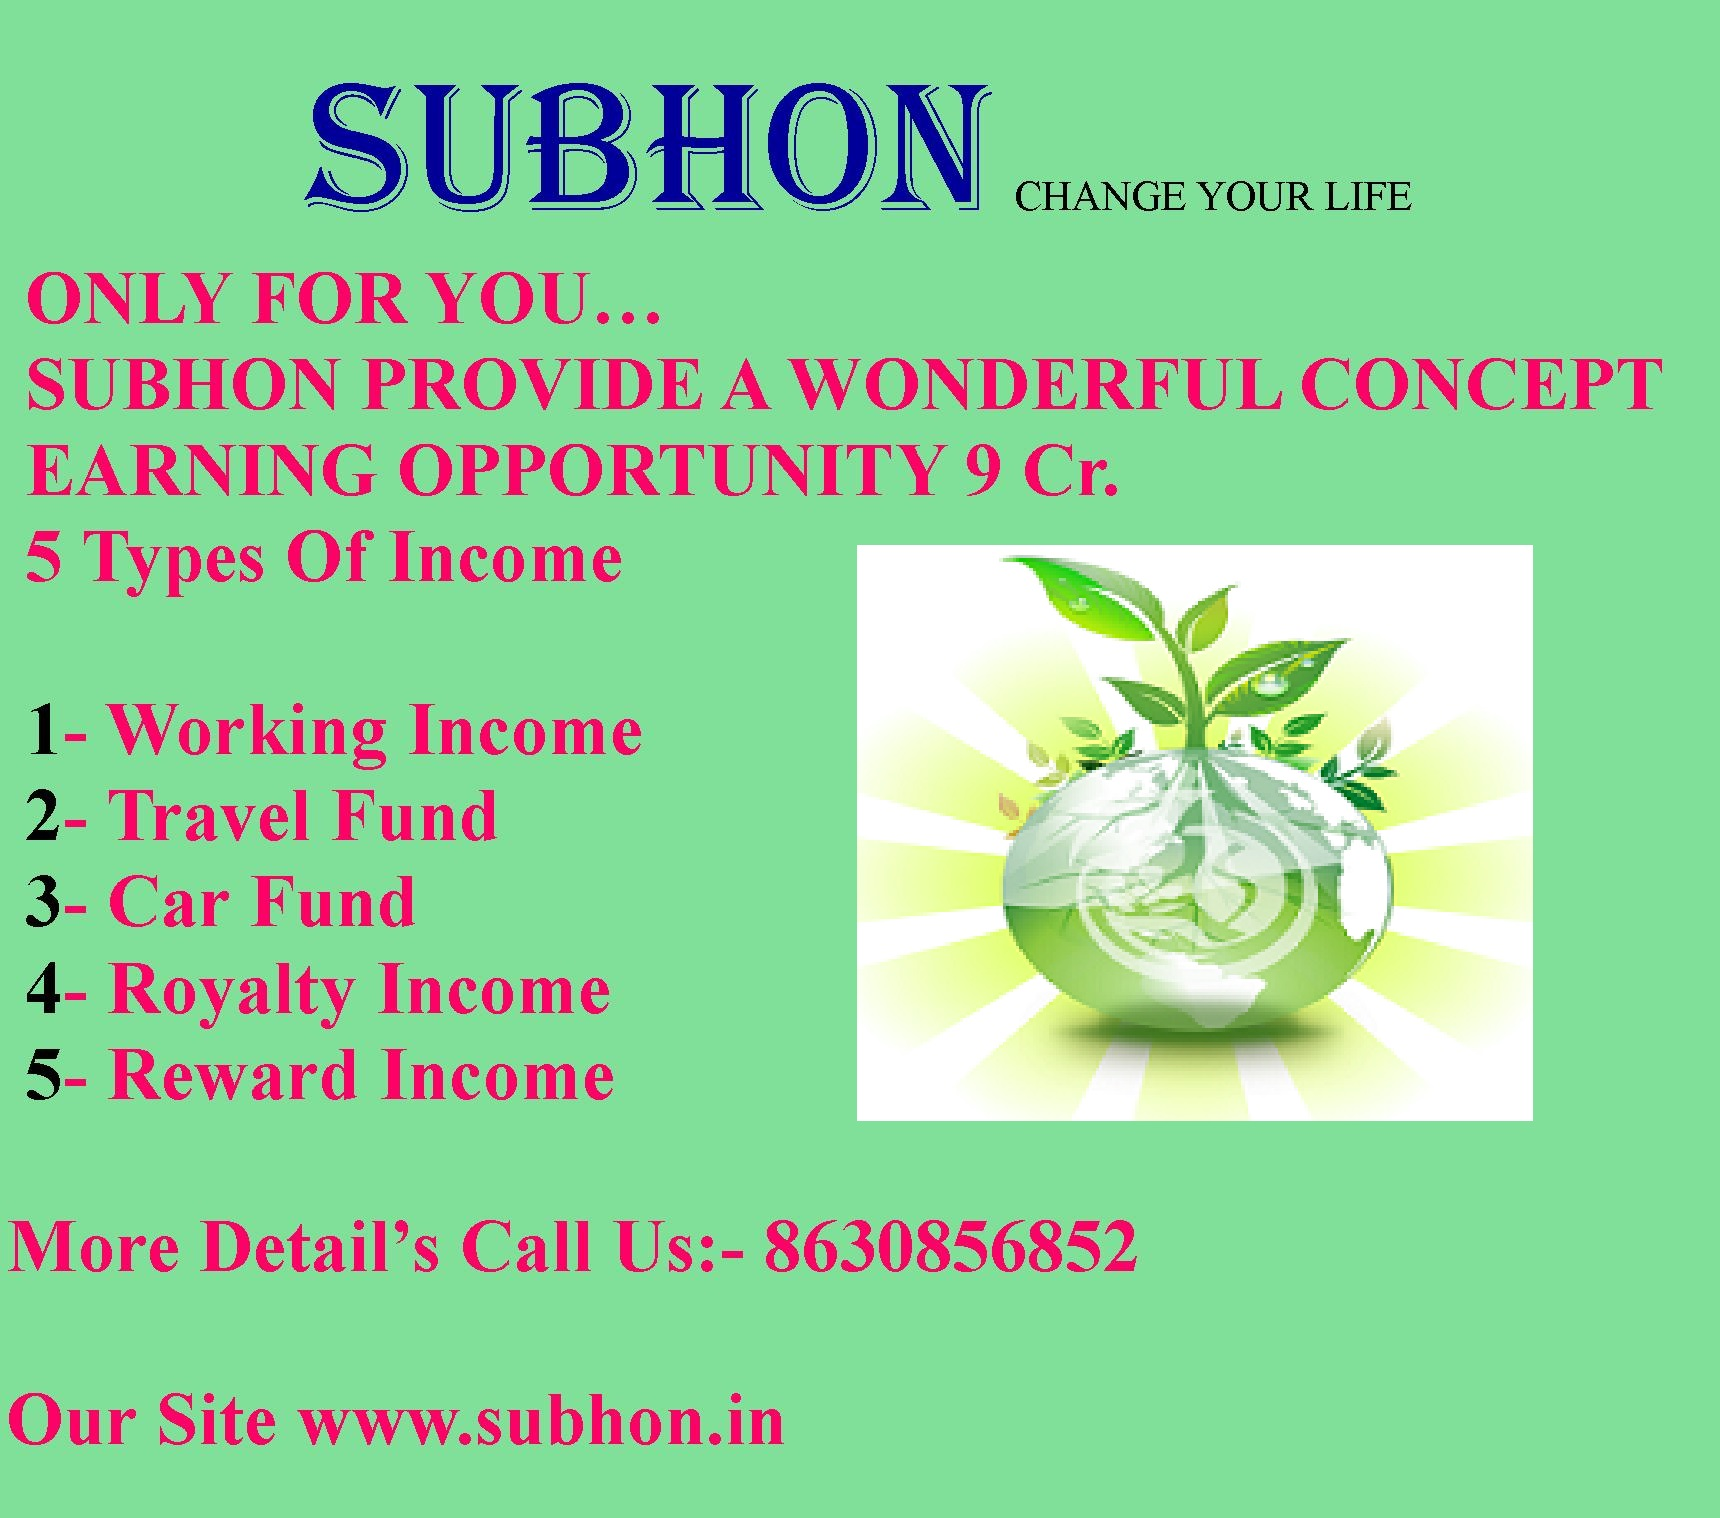 Best ever plan with Subhon join first and get more income